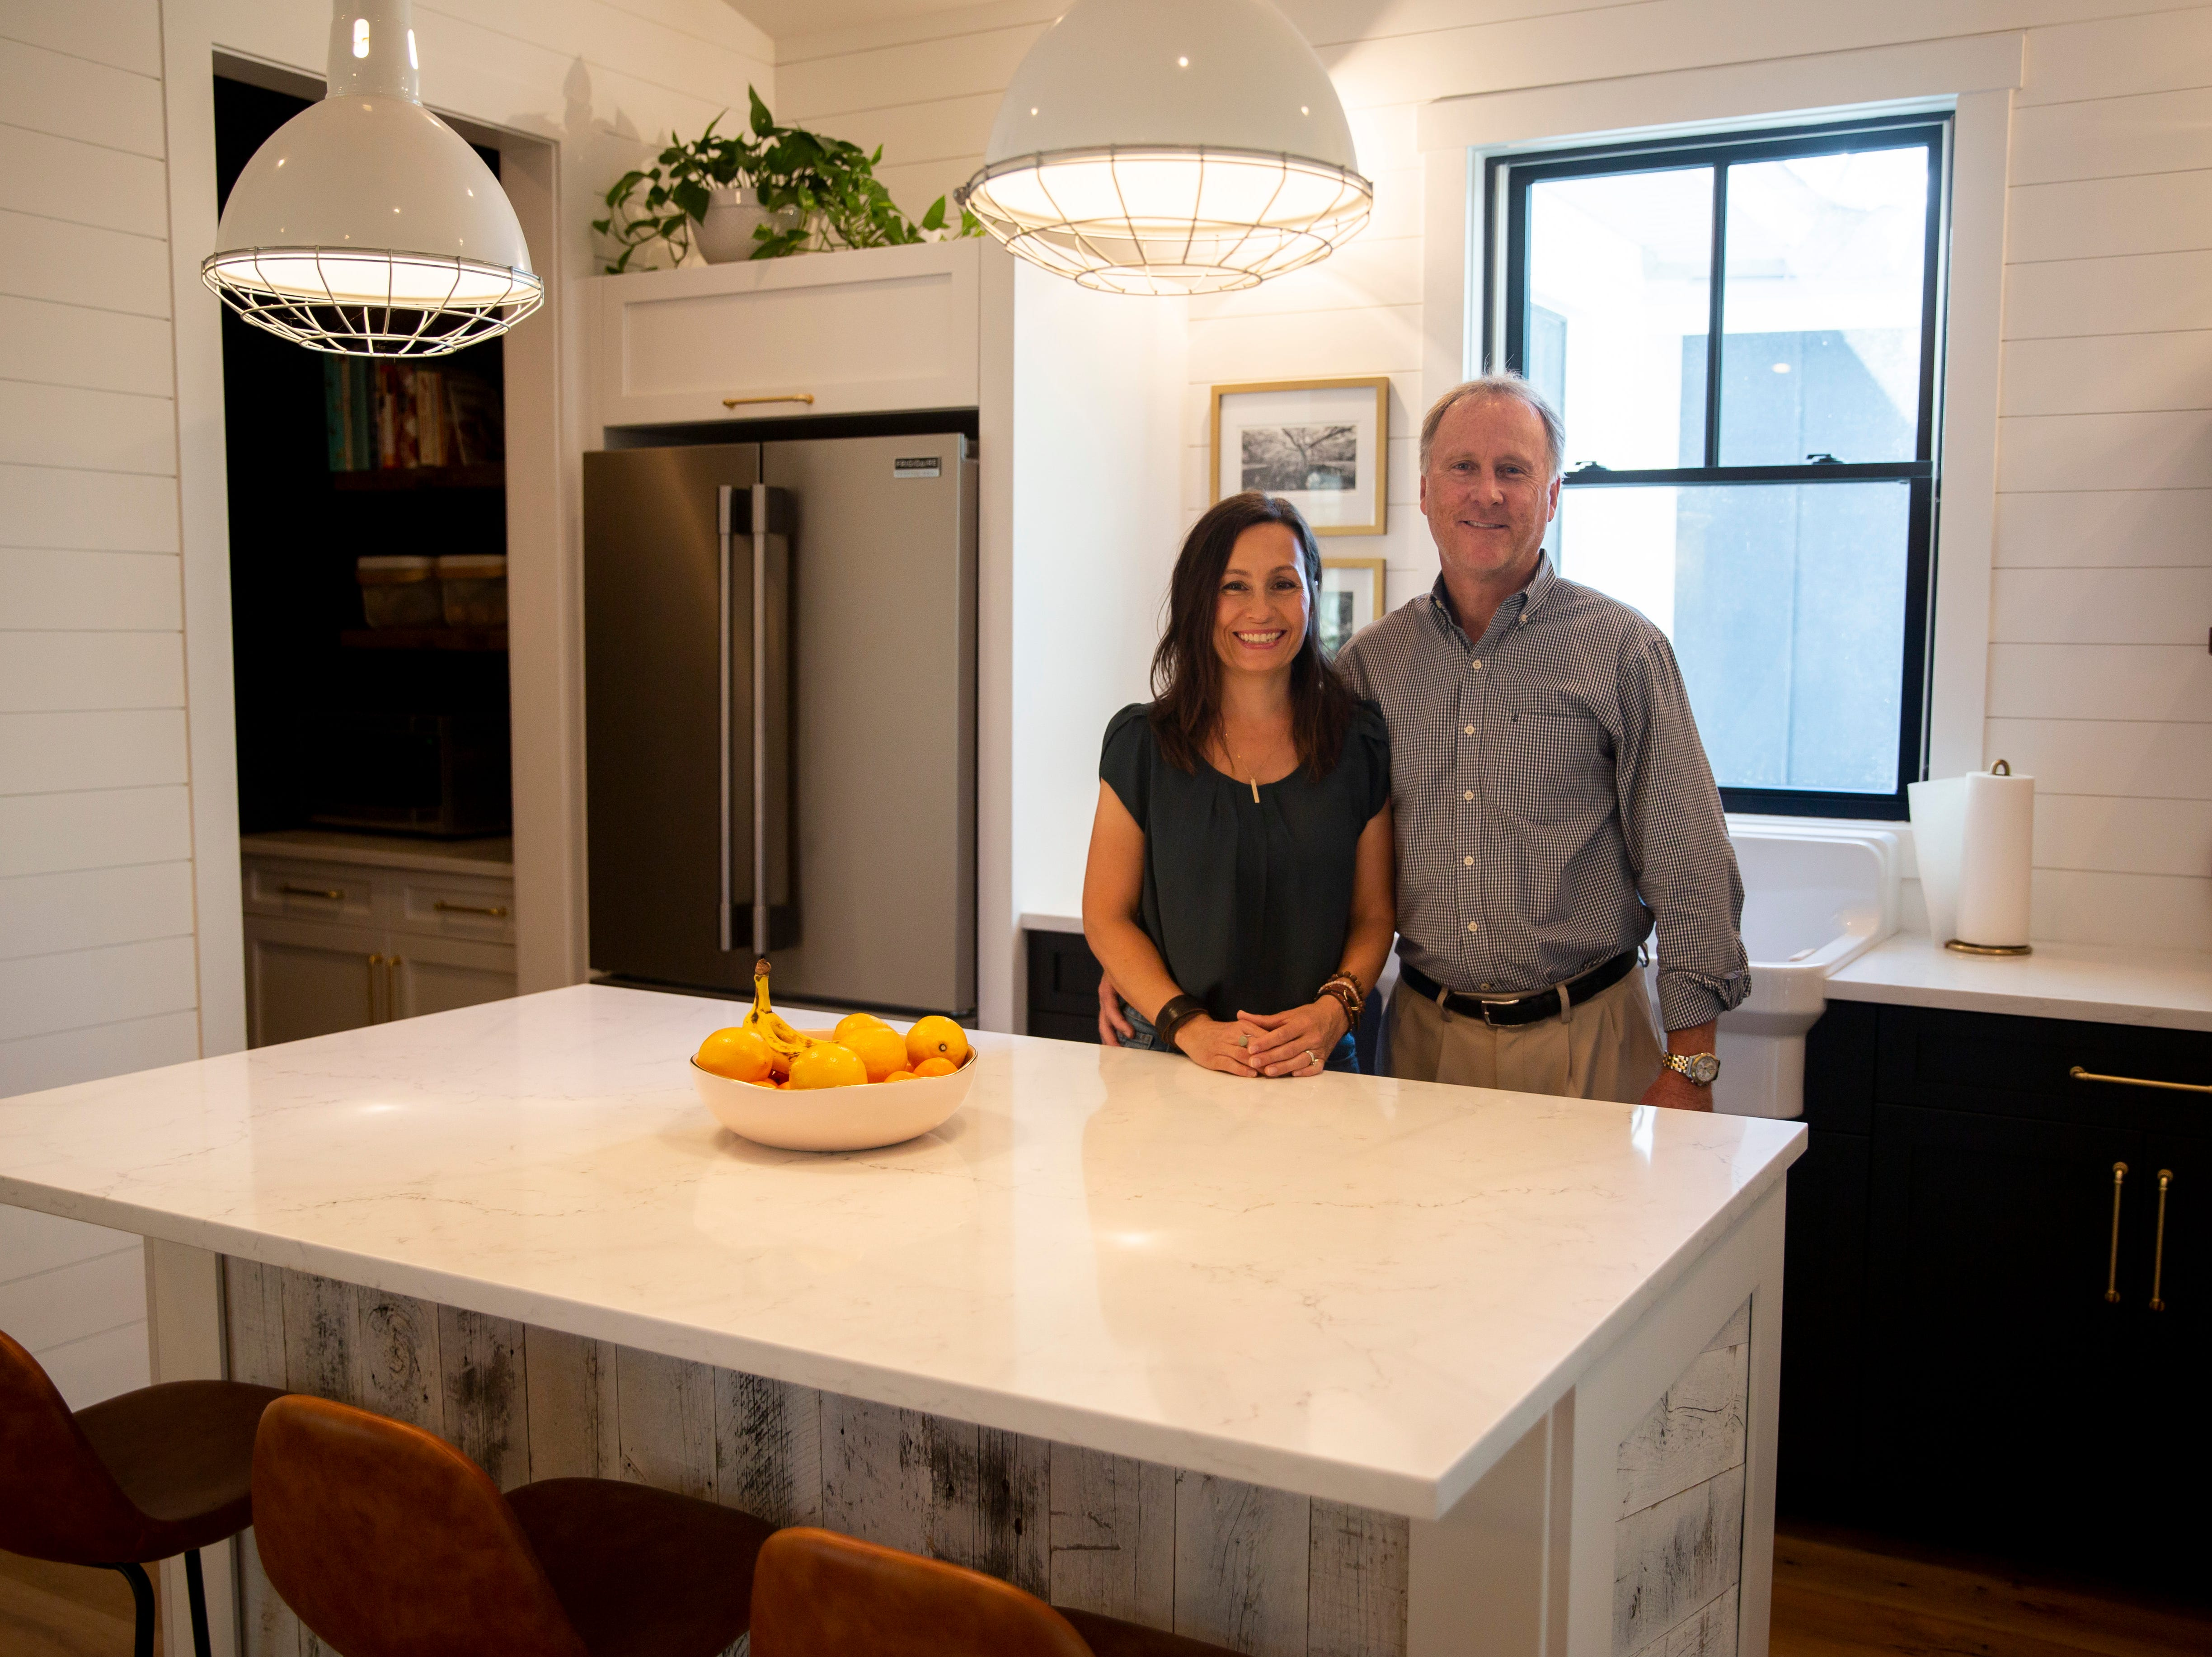 Michelle and Doug Wood pose for a portrait in their kitchen on Thursday, January 10, 2019, in Naples. The couple built their dream home in 2017 and are continuing to work on design projects throughout the house.